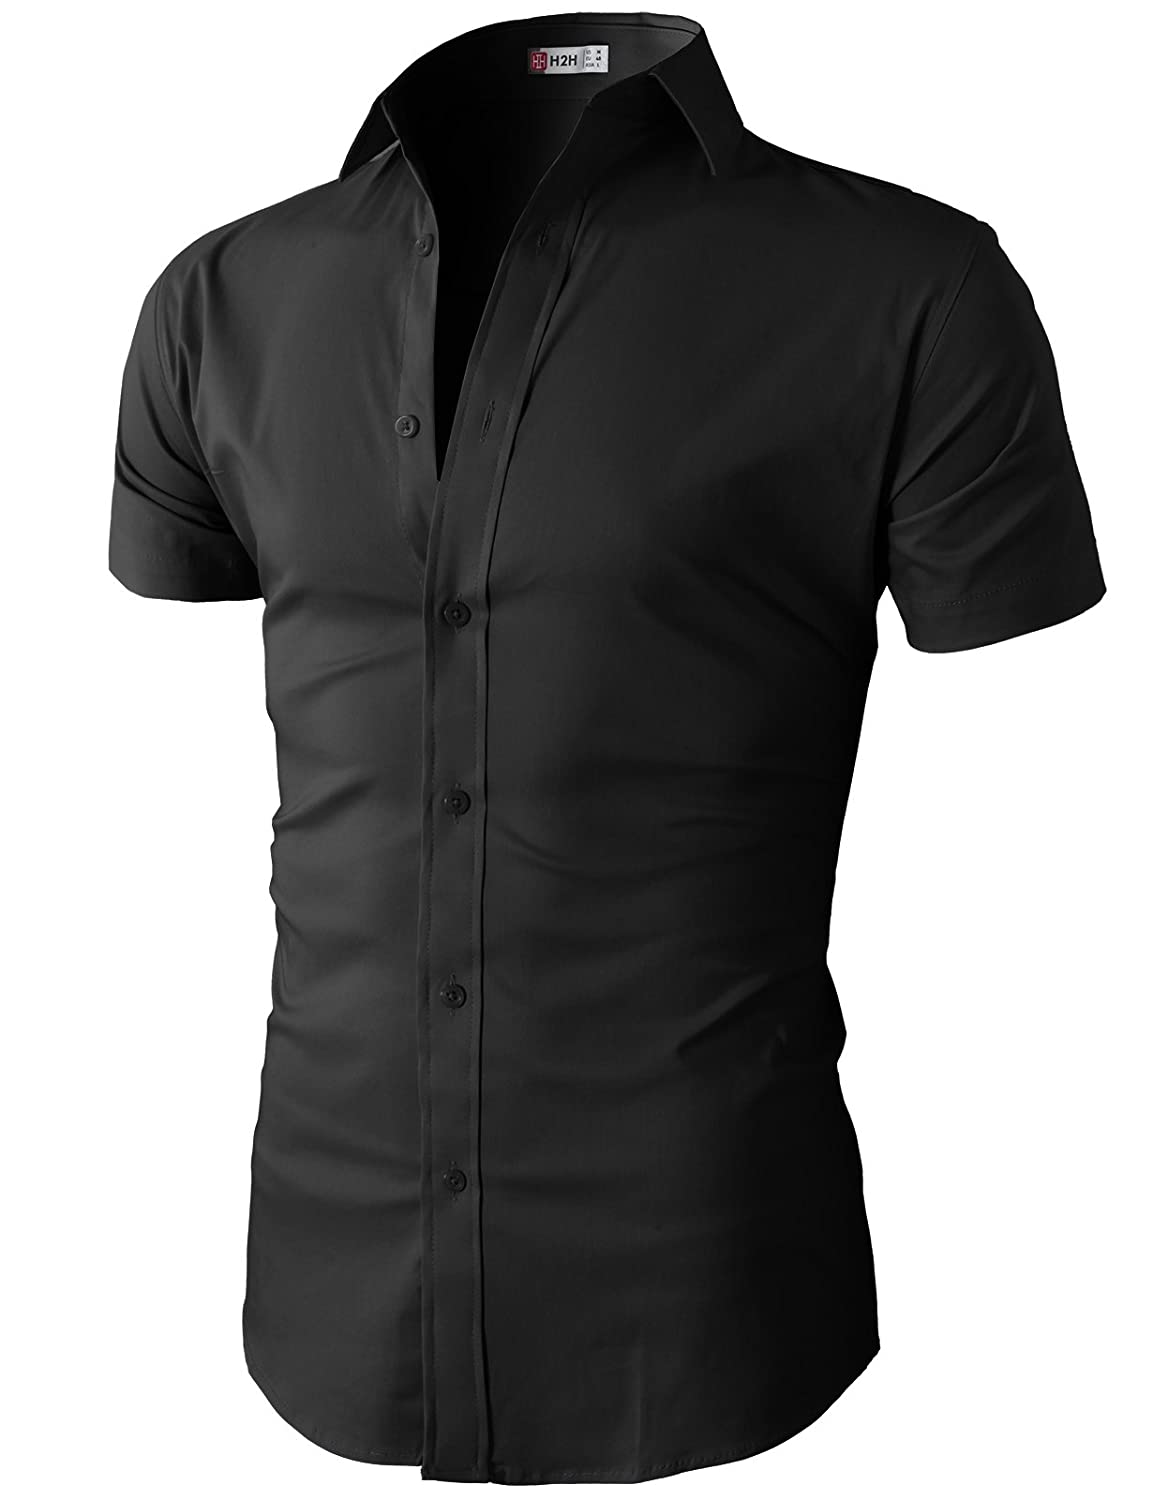 H2H Mens Casual Slim Fit Button-Down Dress Shirts Short Sleeves Solid Colors #KMTSTS0132